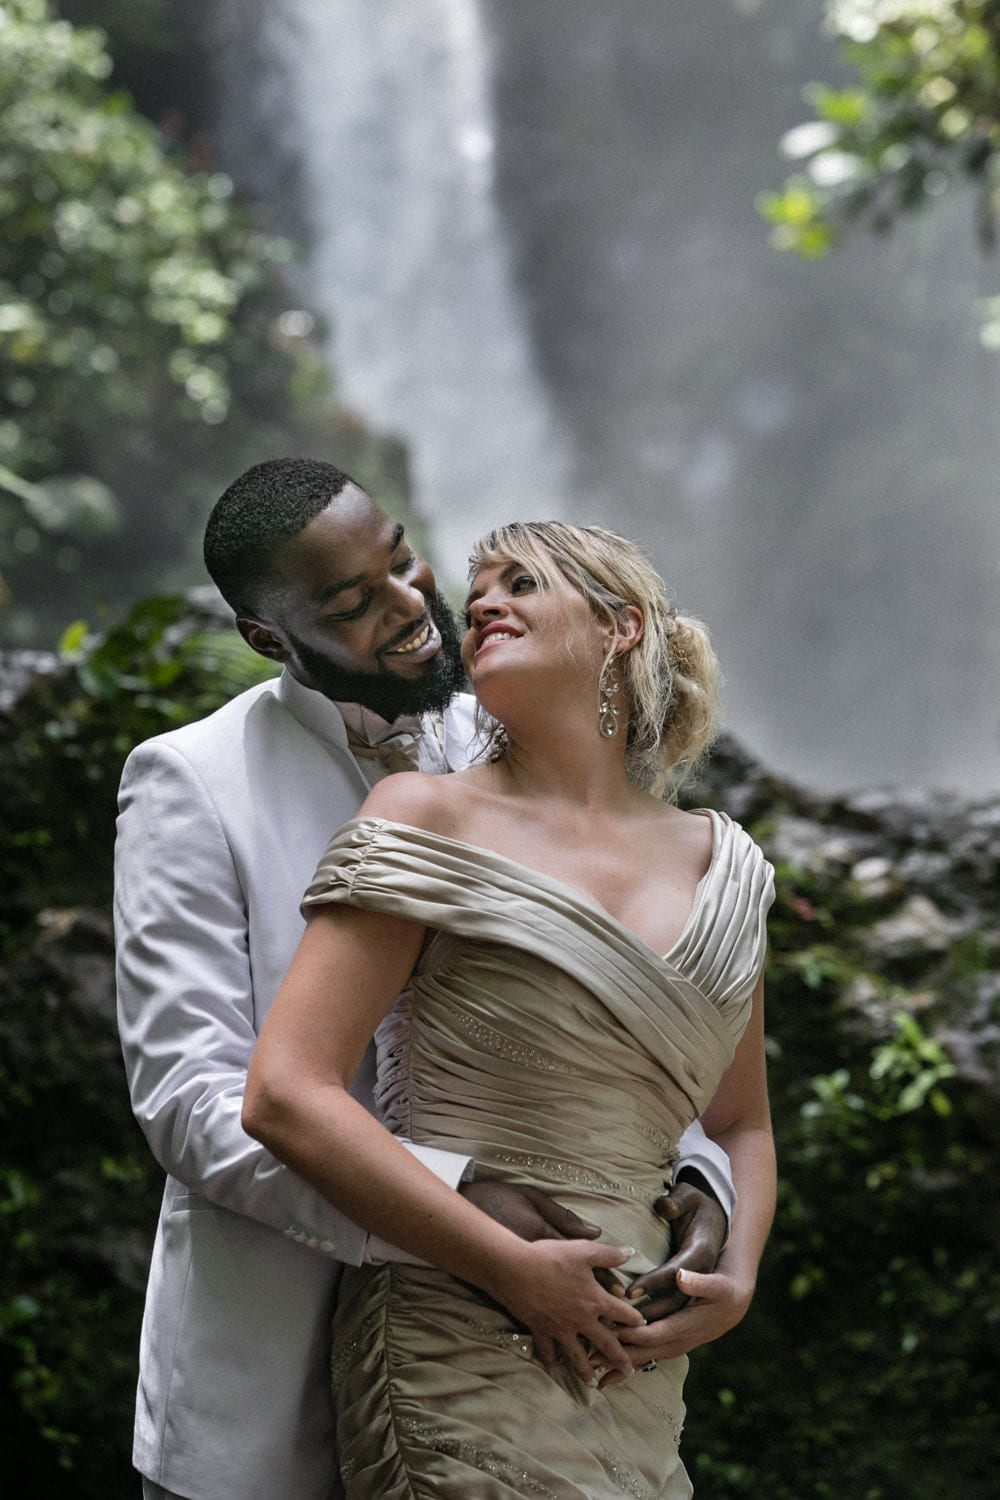 bride-groom-portraits-janet-thad-la-paz-waterfall-gardens-3.jpg